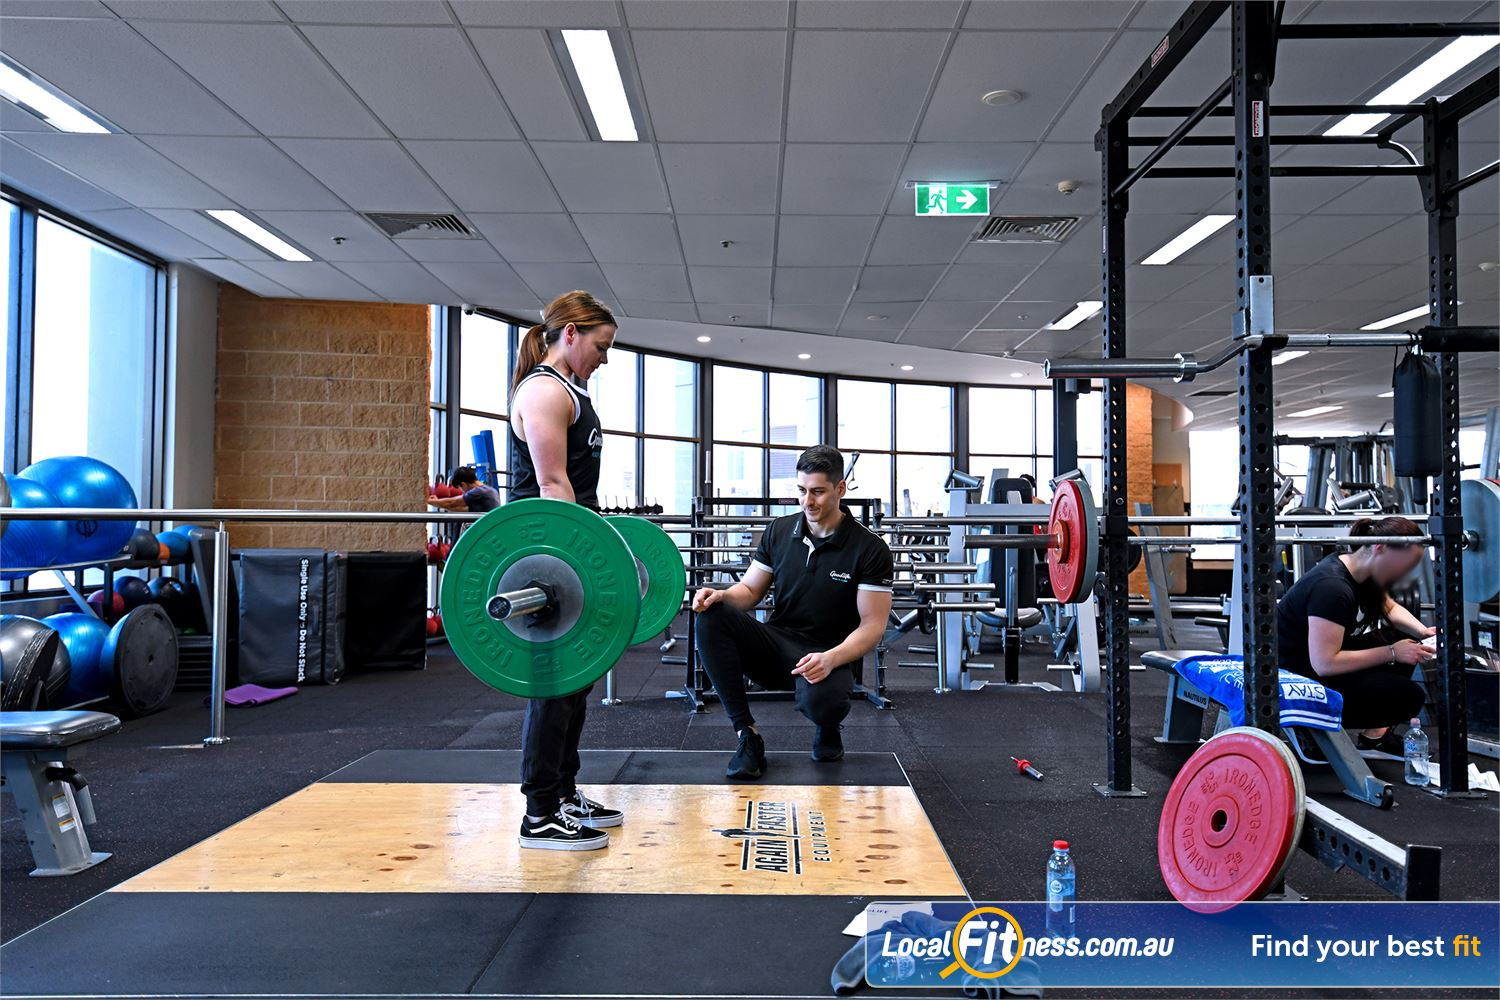 Goodlife Health Clubs Near Brooklyn Lifting platform and racks for strength training in Point Cook.